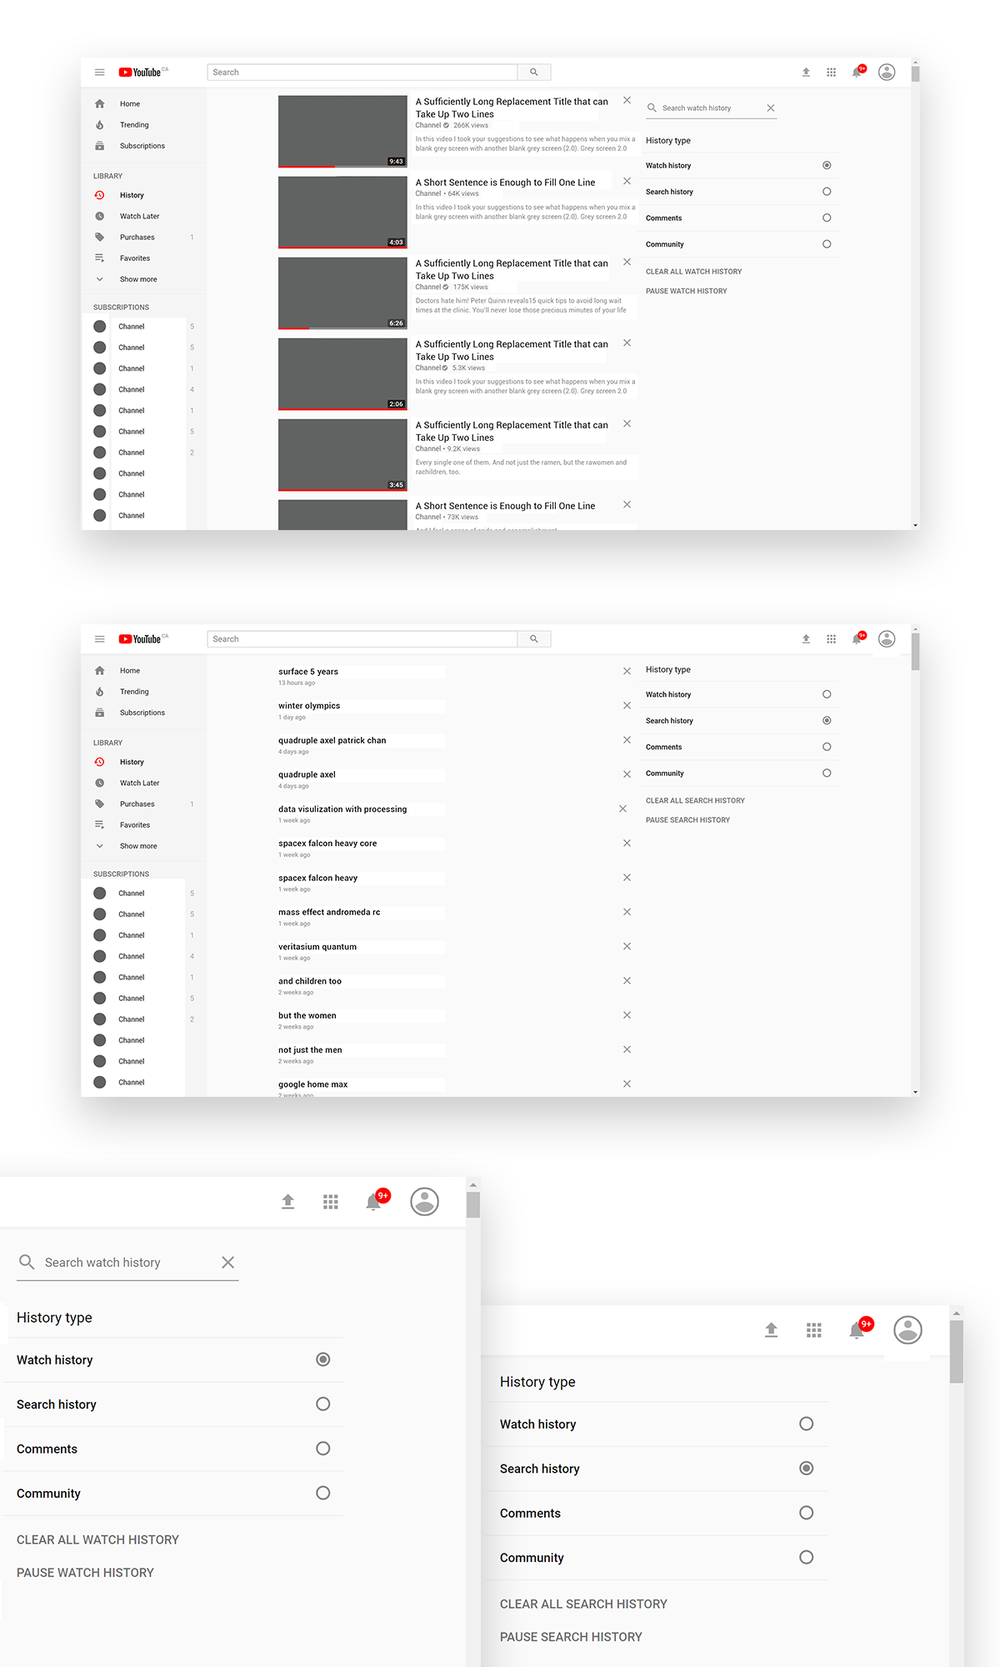 Top: New Watch history. Middle: New Search history. Bottom: detail of history selection. You can search through your watch history but not your search history.